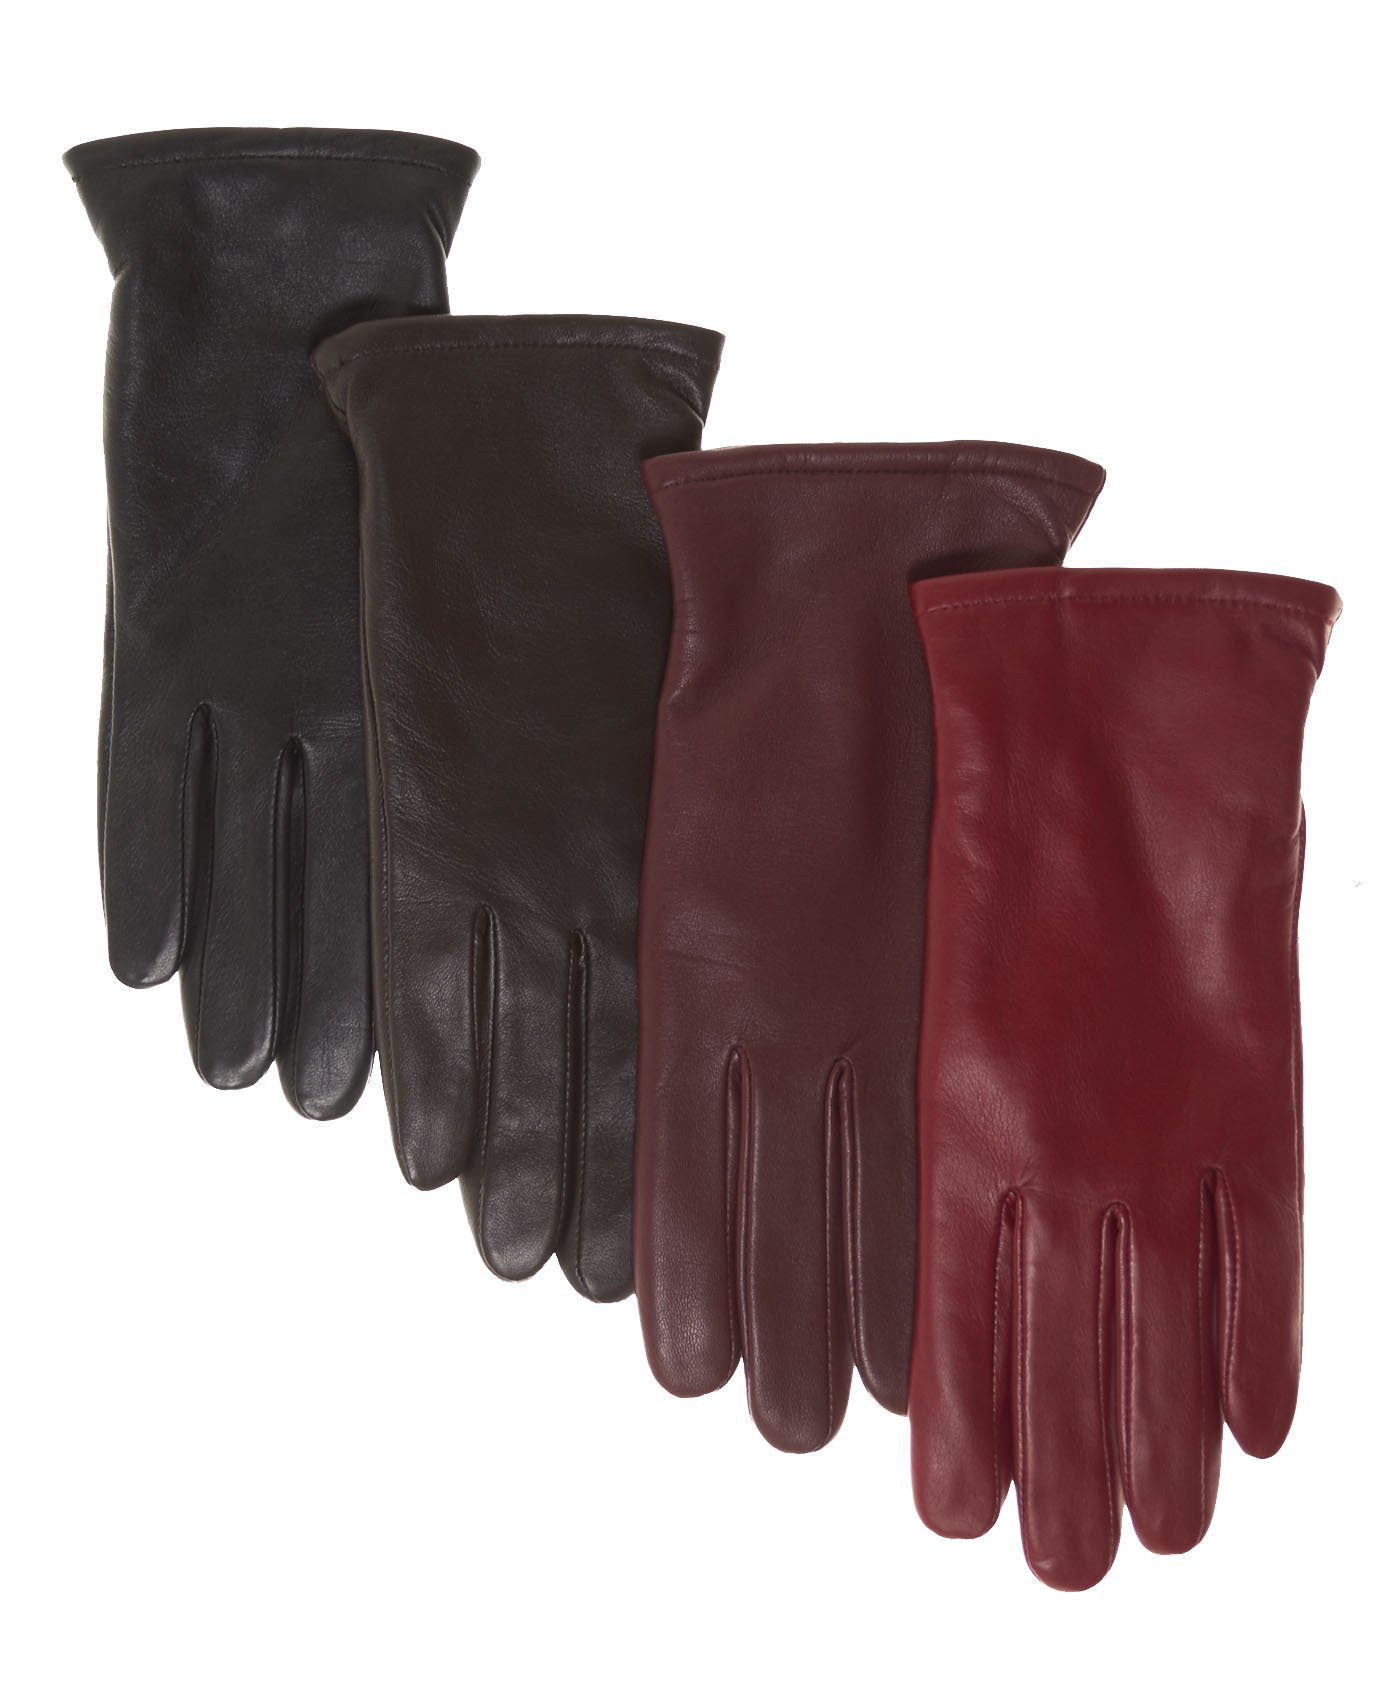 Pratt and Hart Women's Classic Thinsulate Lined Leather Gloves Size 7 1/2 Color Black